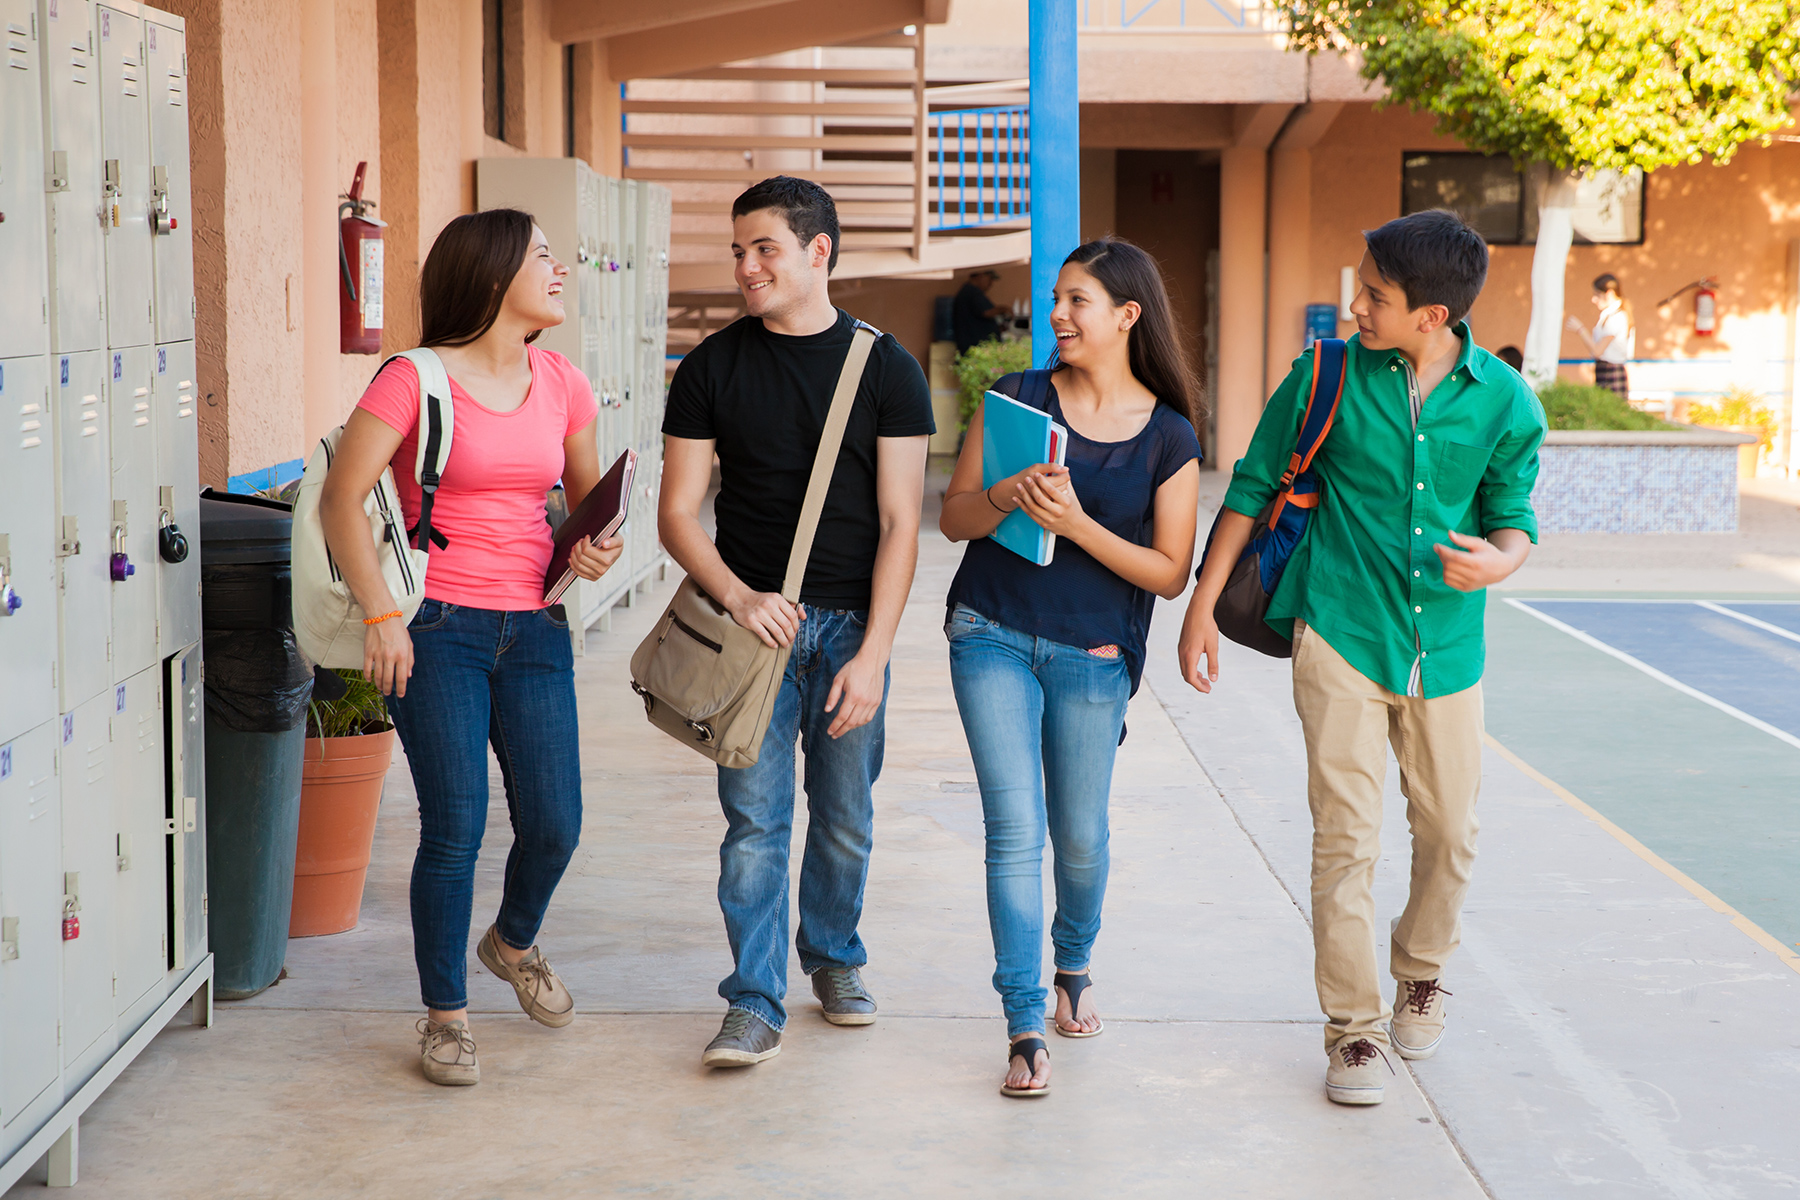 Education in Spain: secondary school students